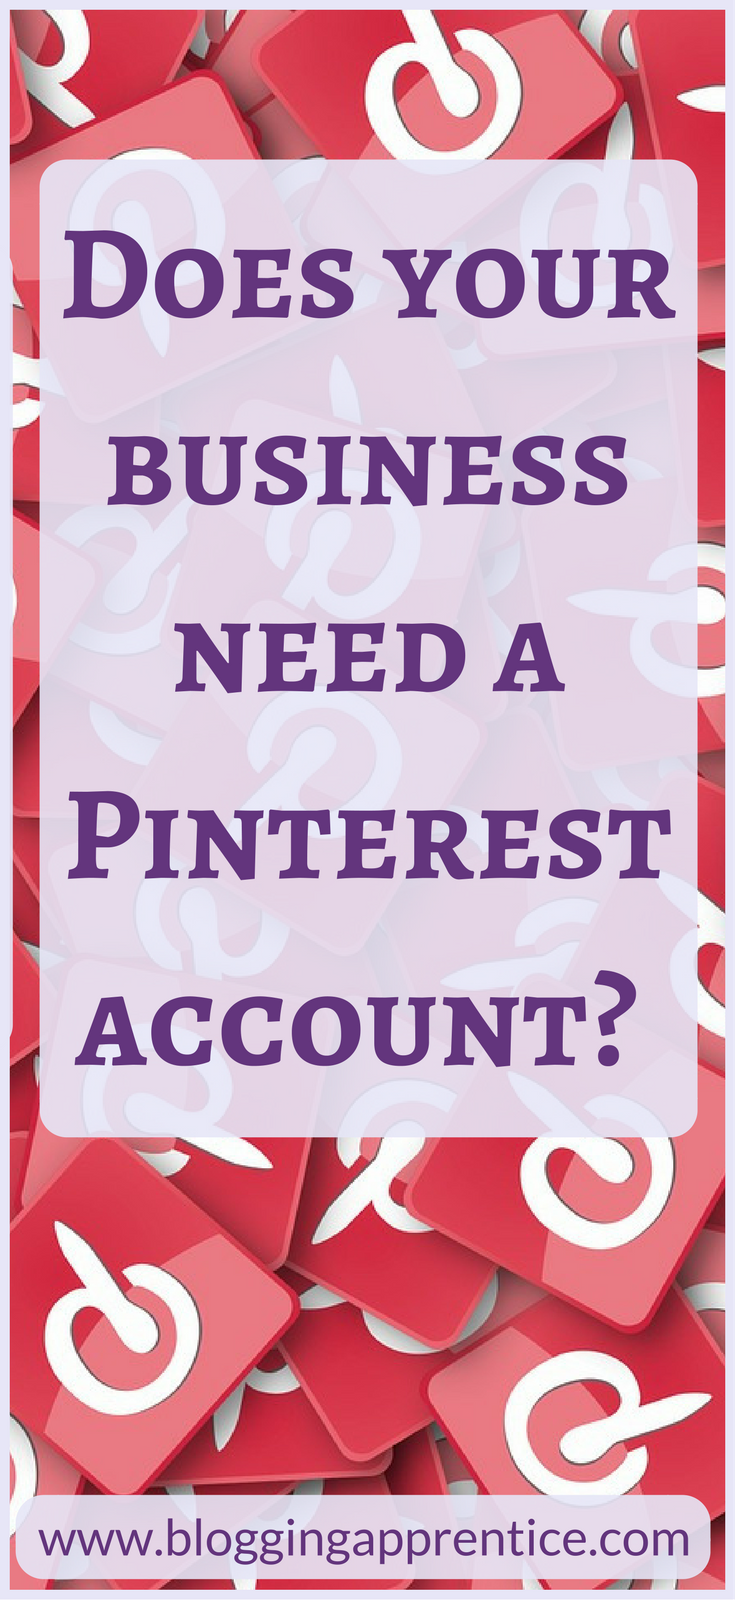 If you have a Pinterest account already, do pin this image to one of your boards for later reference!